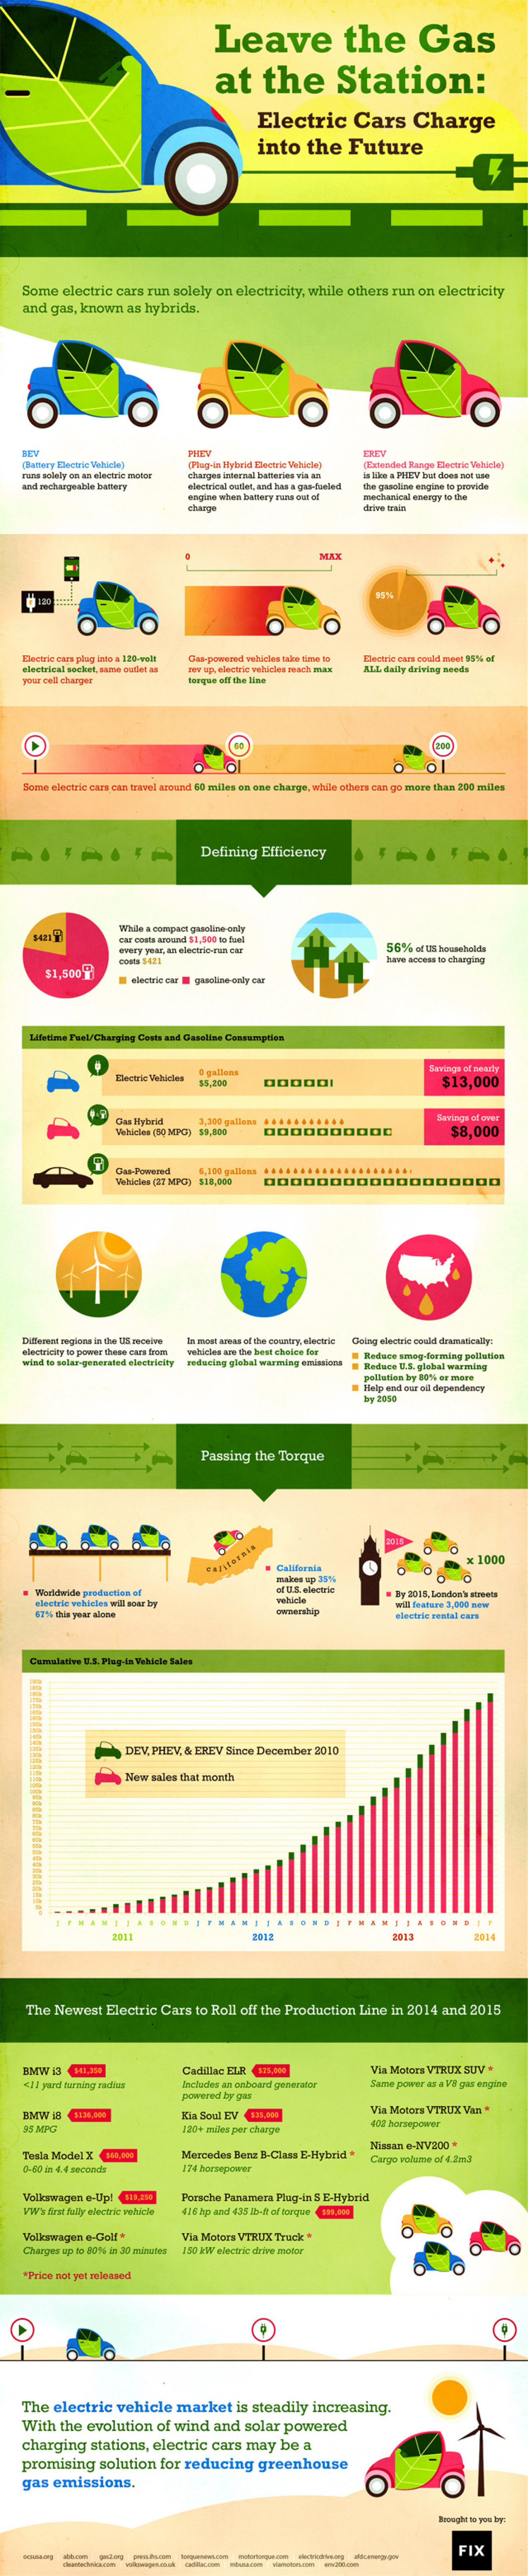 Leave the Gas at the Station: Electric Cars Charge Into the Future Infographic